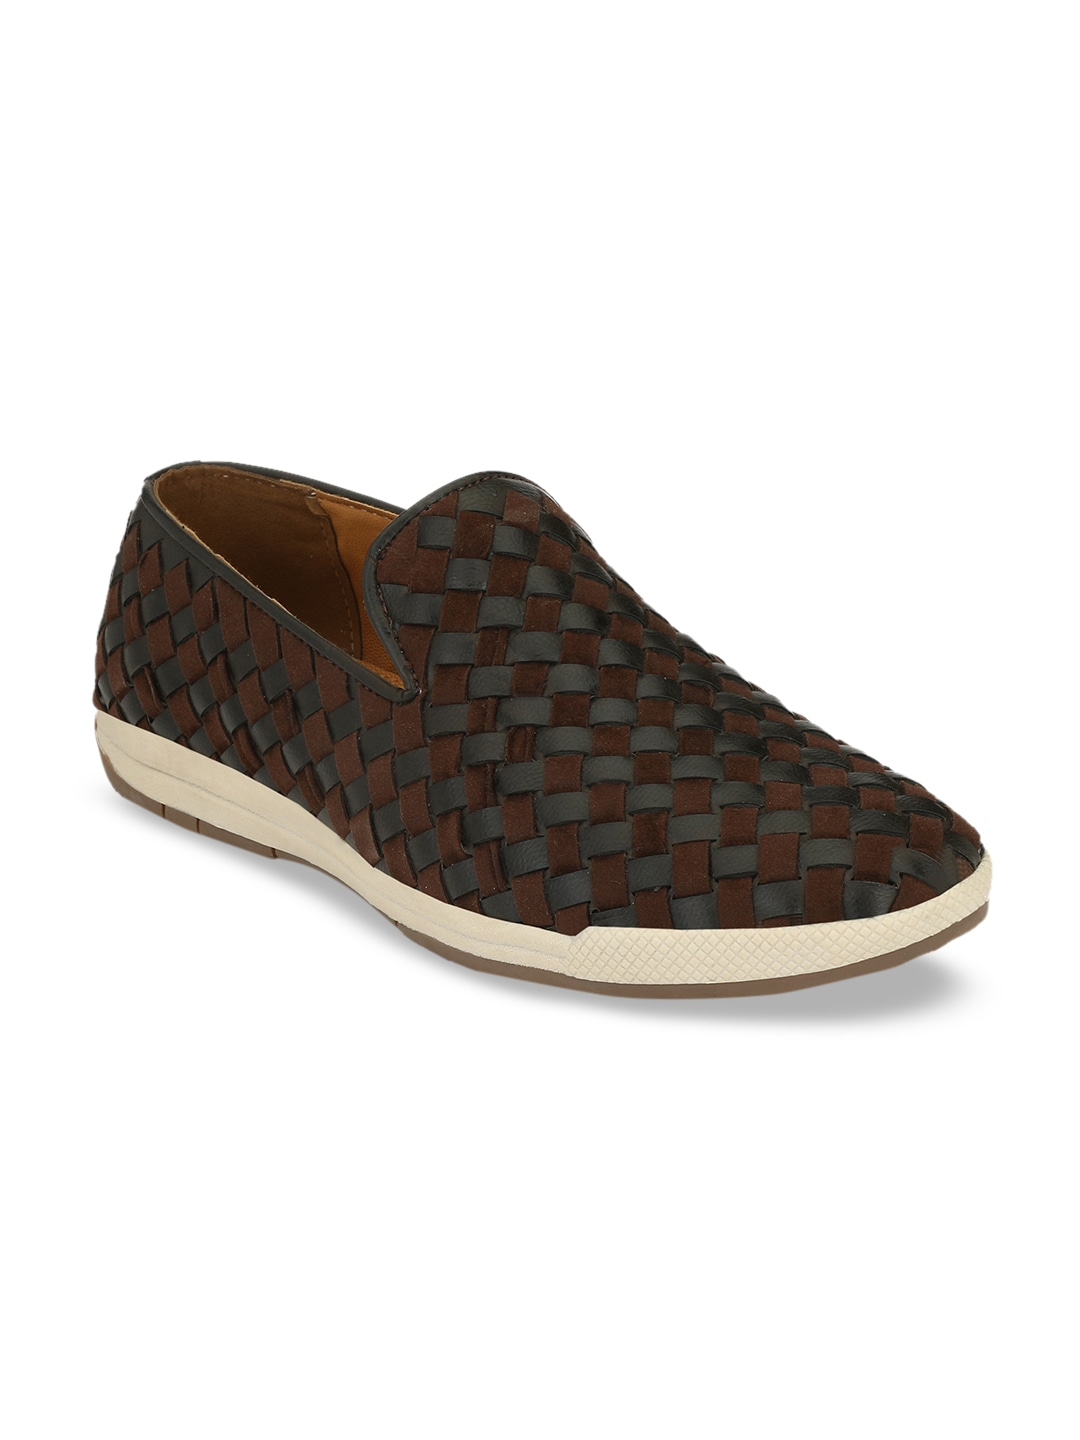 Brown & Grey Woven Design Leather Slip-On Sneakers